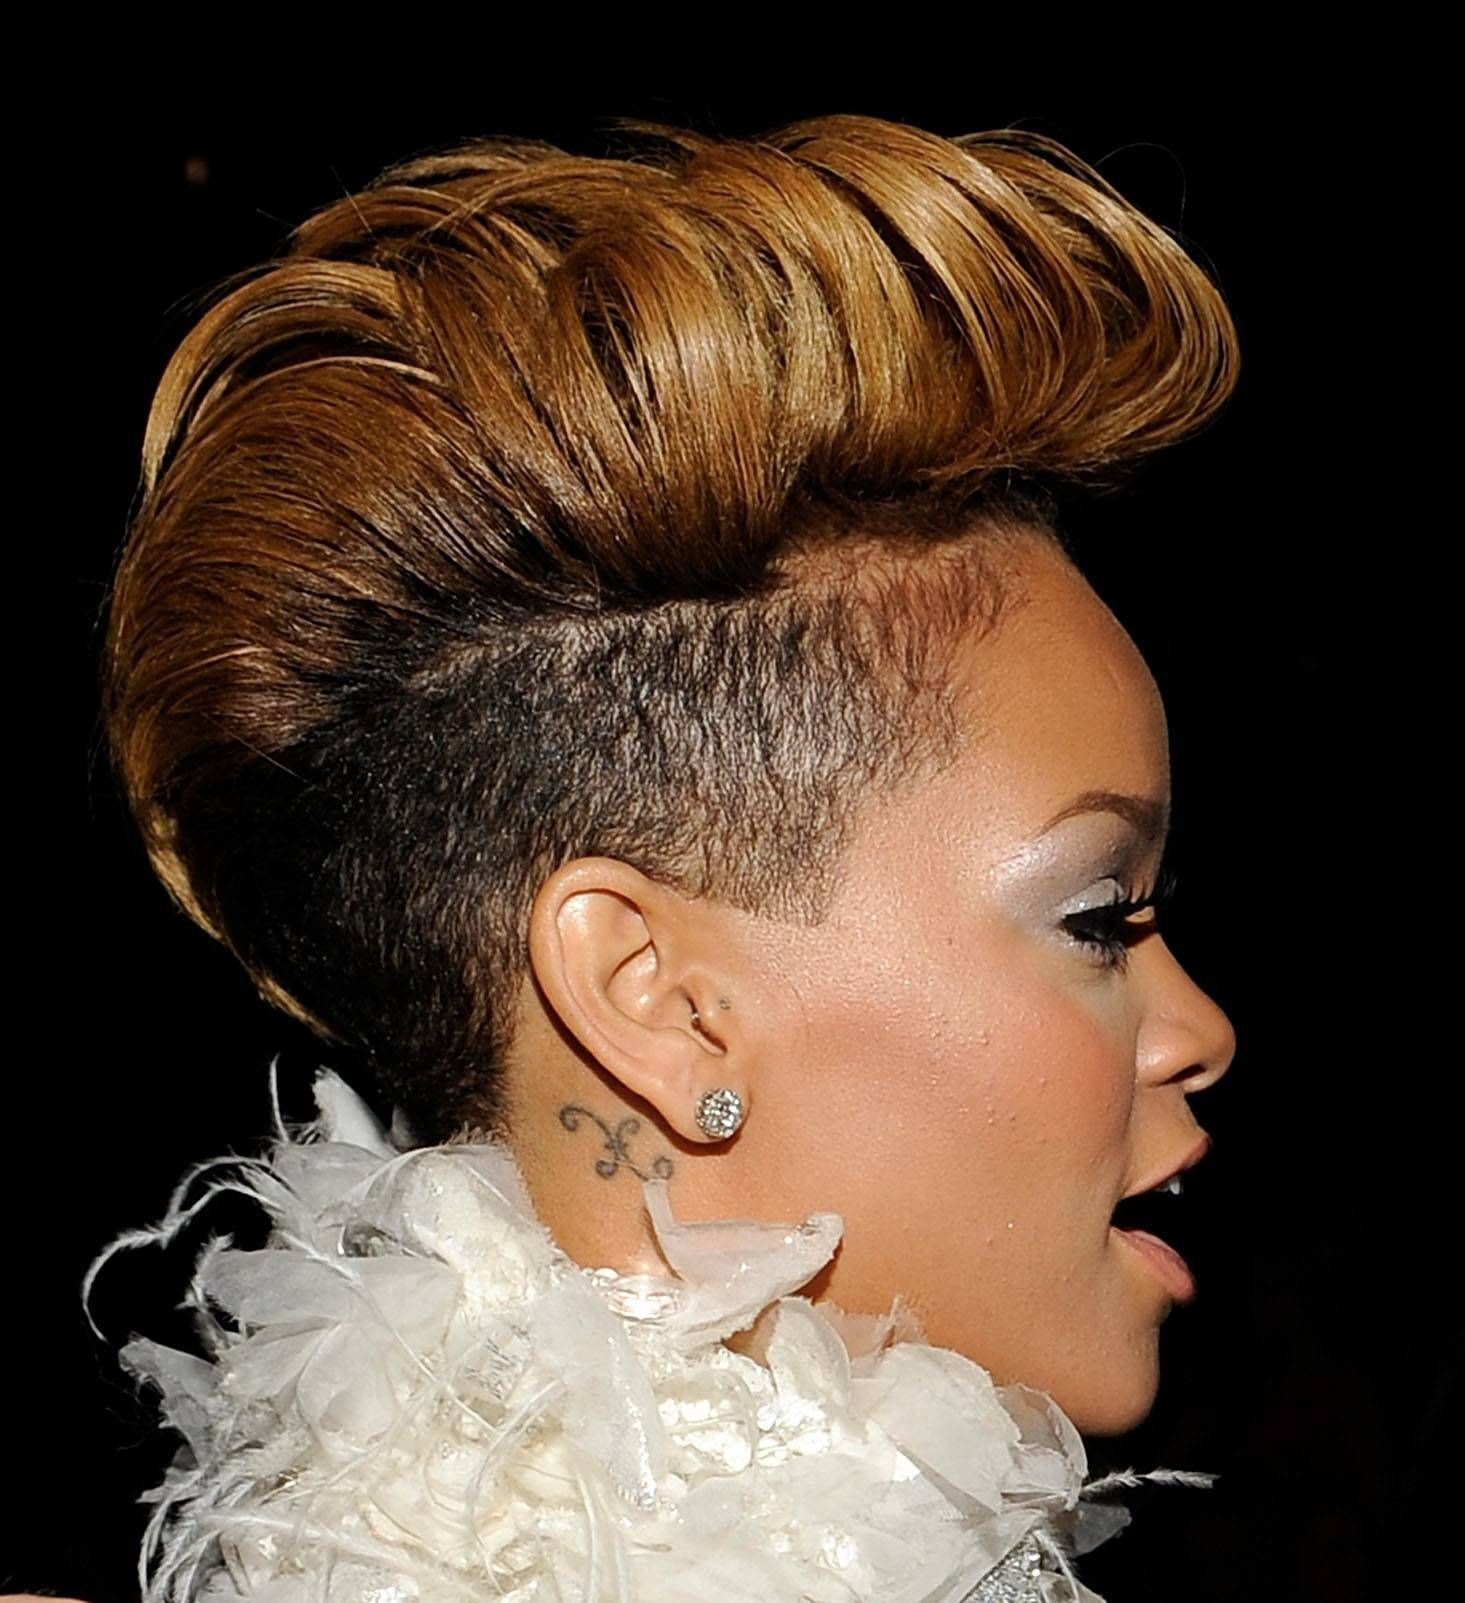 The Best Best 25 Mohawk Hair Ideas On Pinterest Pink Hair Spray Pictures